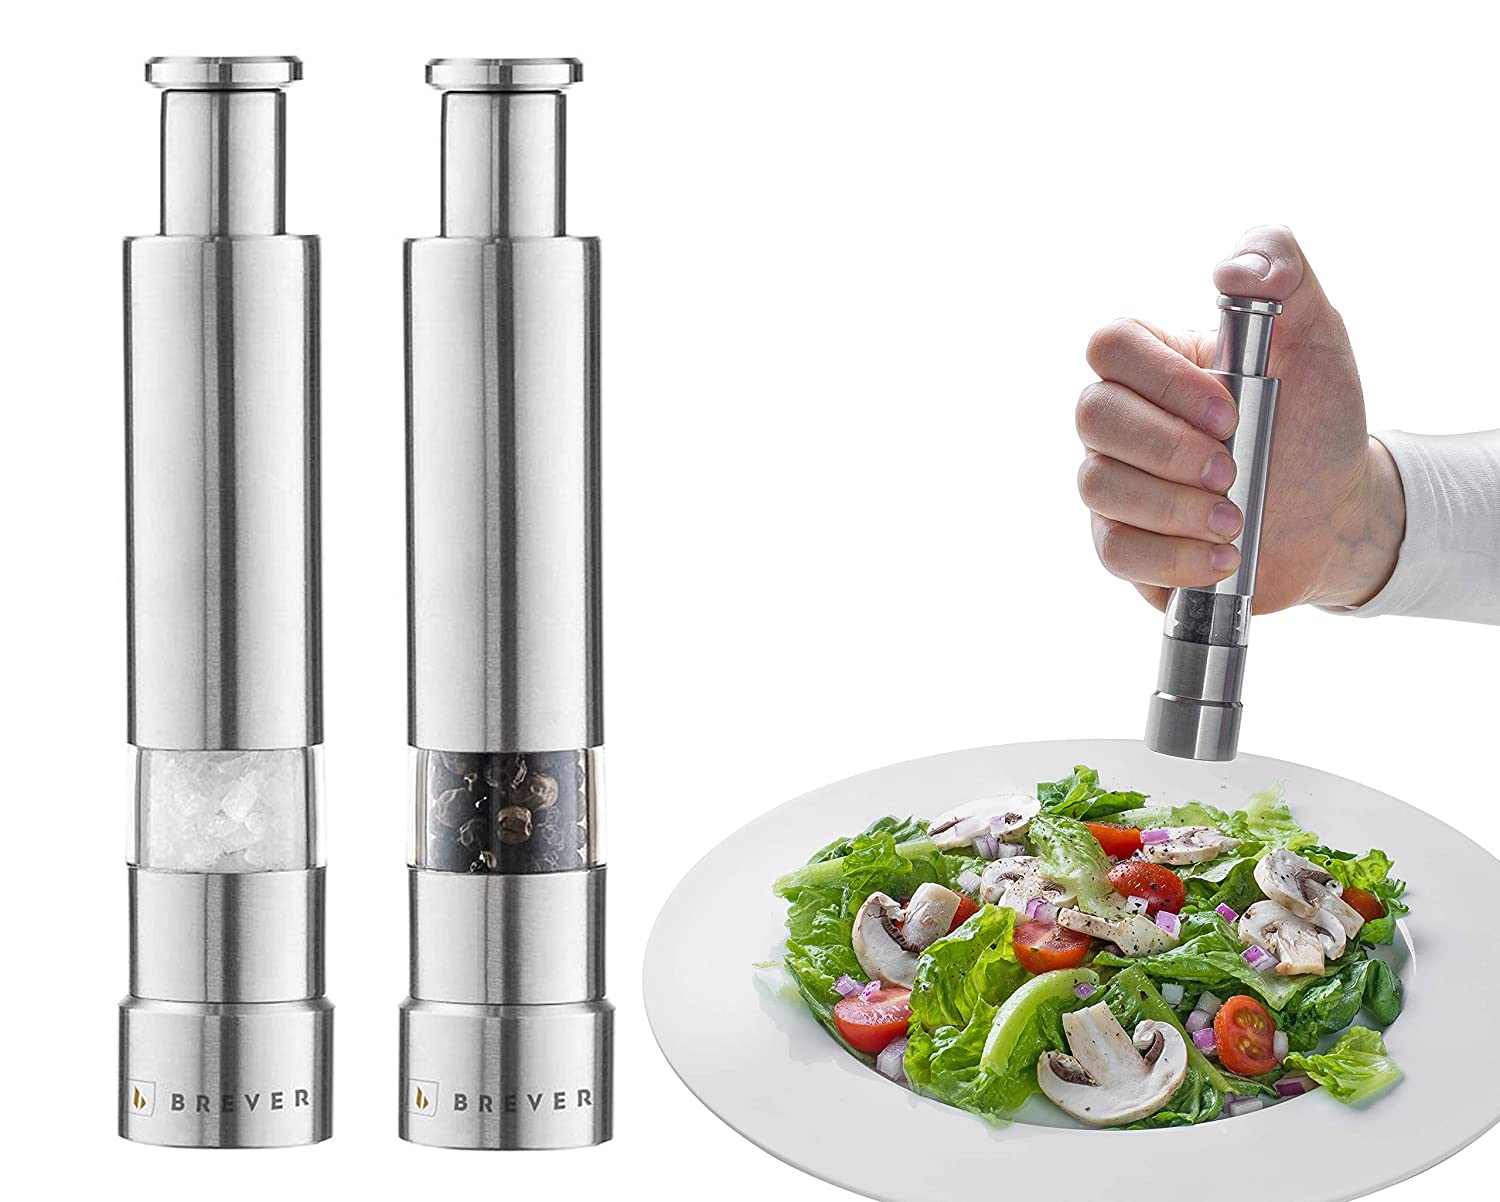 Brever One Handed Salt and Pepper Grinder Set | Pack of 2 Mills | Chic Modern Design | For Himalayan Salt, Peppercorn Medleys, Minced Garlic, and Other Whole Spices | Stainless Steel and Acrylic SH-10C